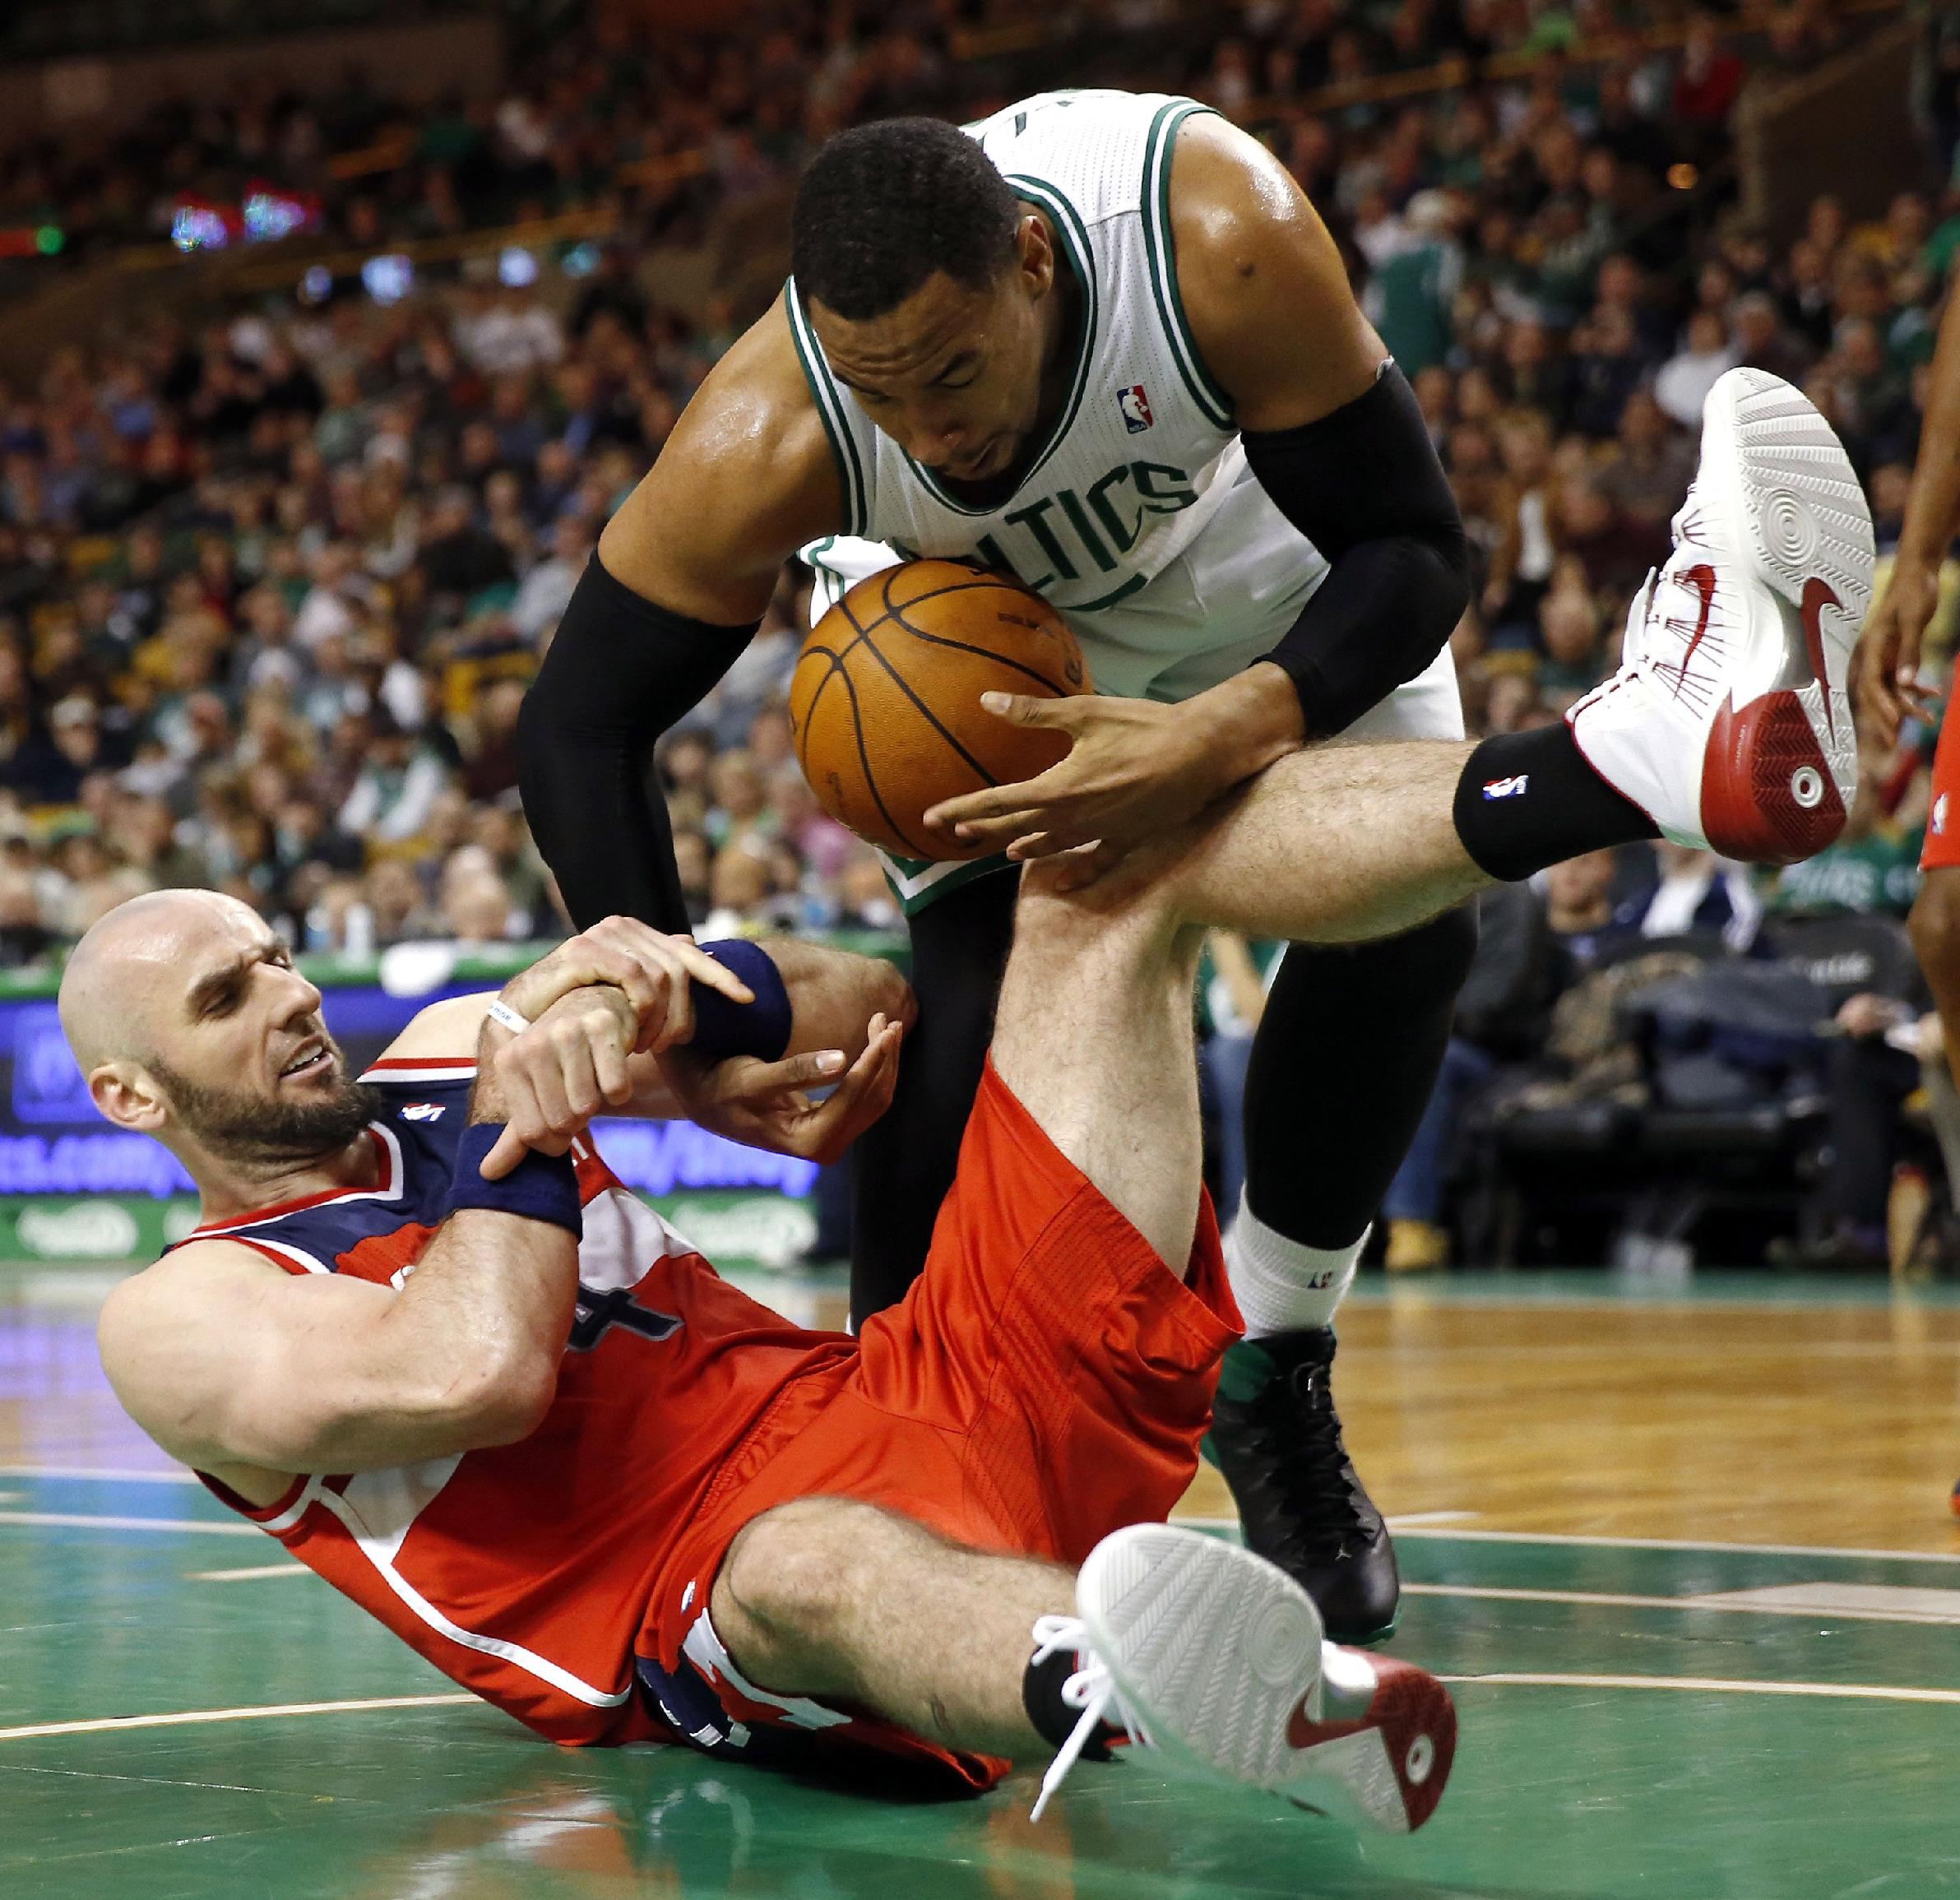 Boston Celtics' Jared Sullinger (7) and Washington Wizards' Marcin Gortat (4) battle for a loose ball in the third quarter of an NBA basketball game in Boston, Saturday, Dec. 21, 2013. The Wizards won 106-99